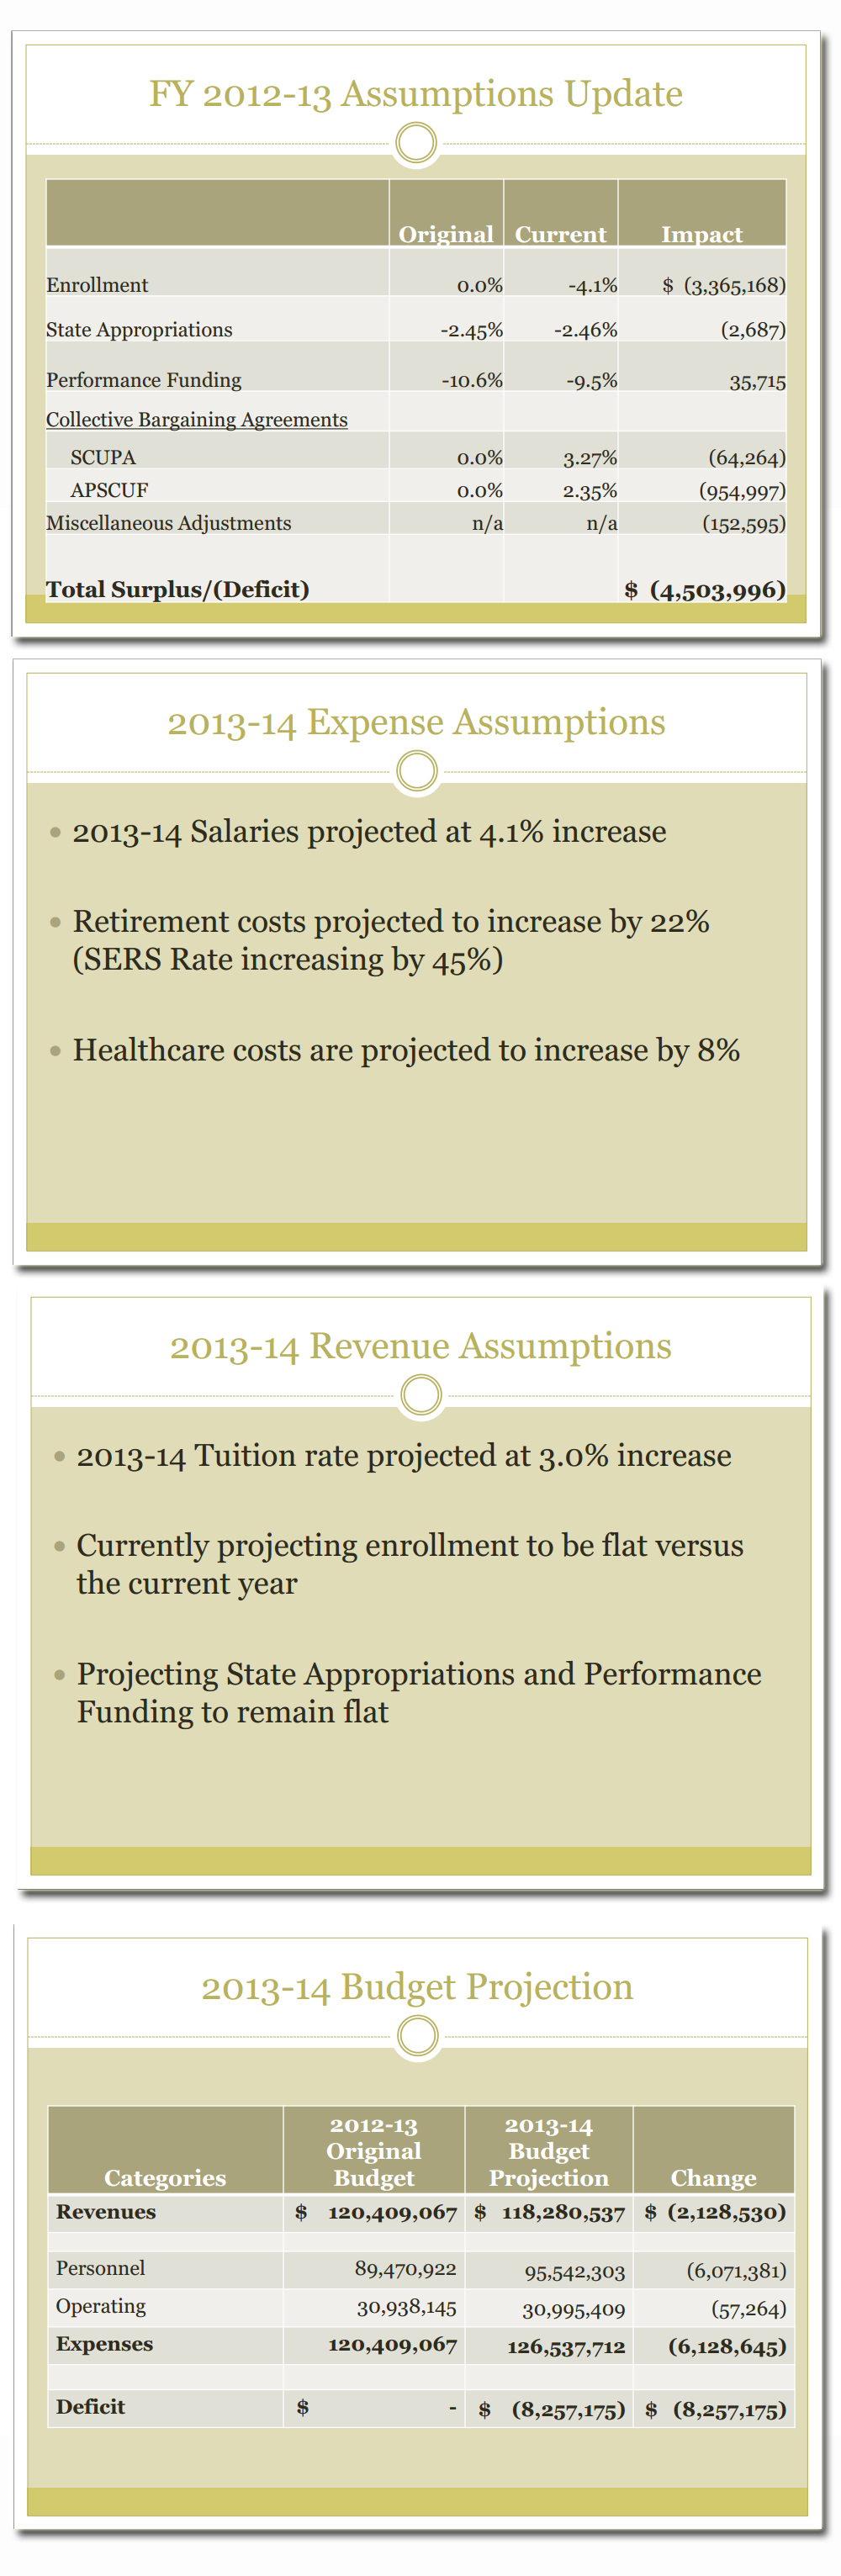 From: Kutztown University Budget Forcast for Fiscal Year 2013-2014. Presented spring 2013.